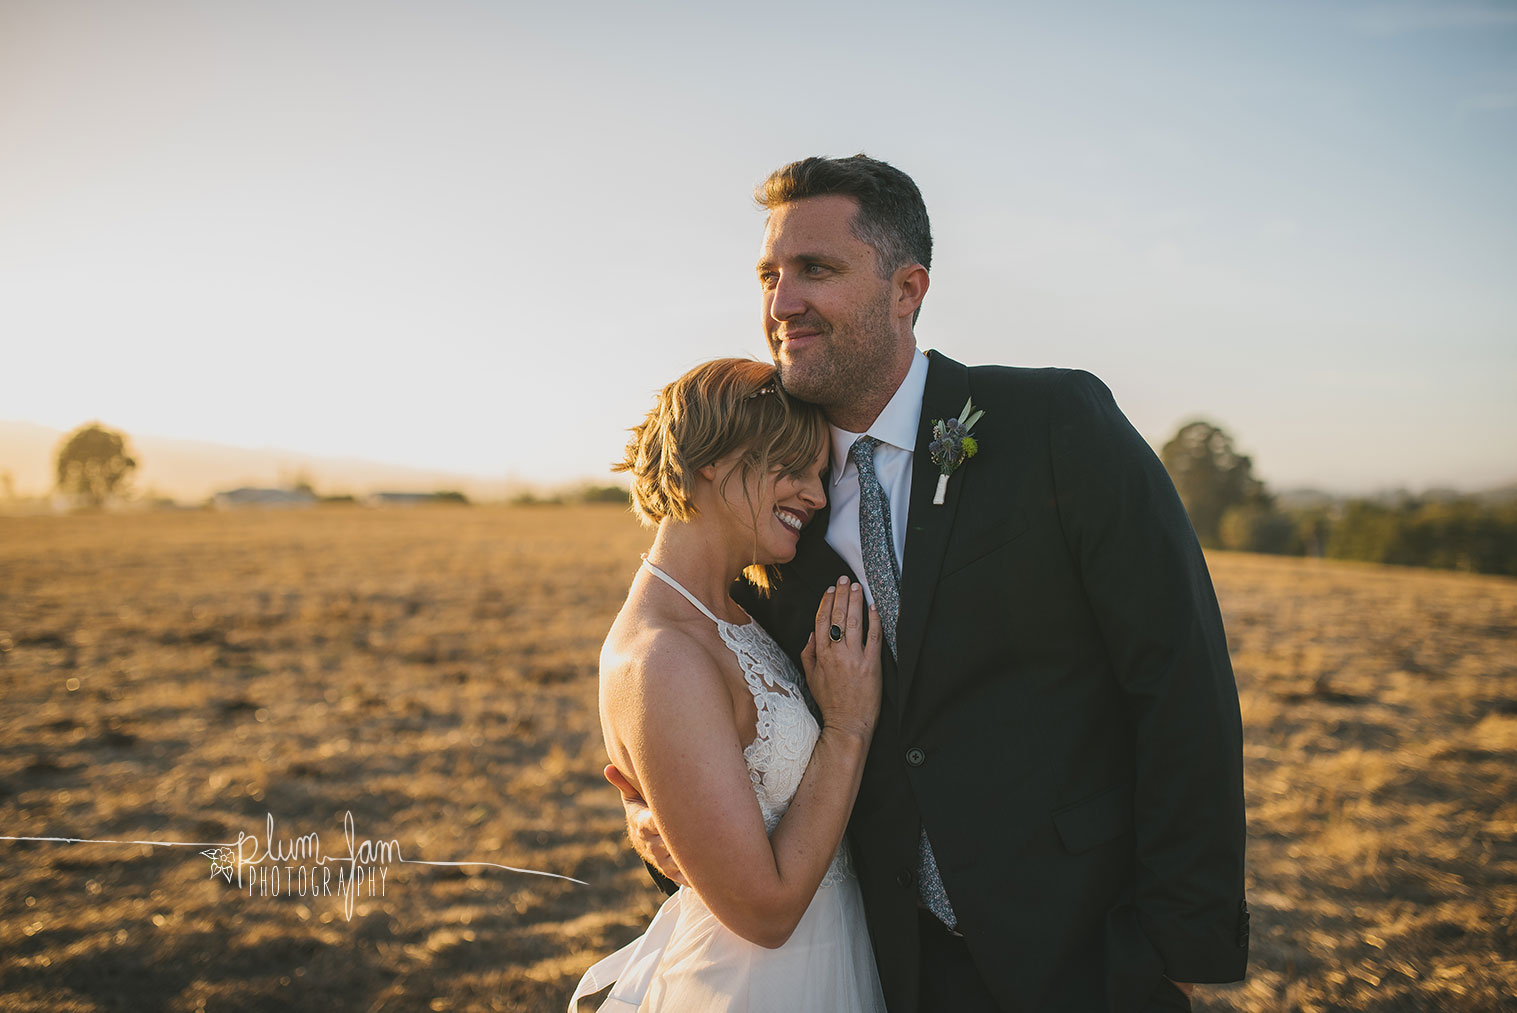 AshleyTylerWedding-Blog-030-PlumJamPhotography